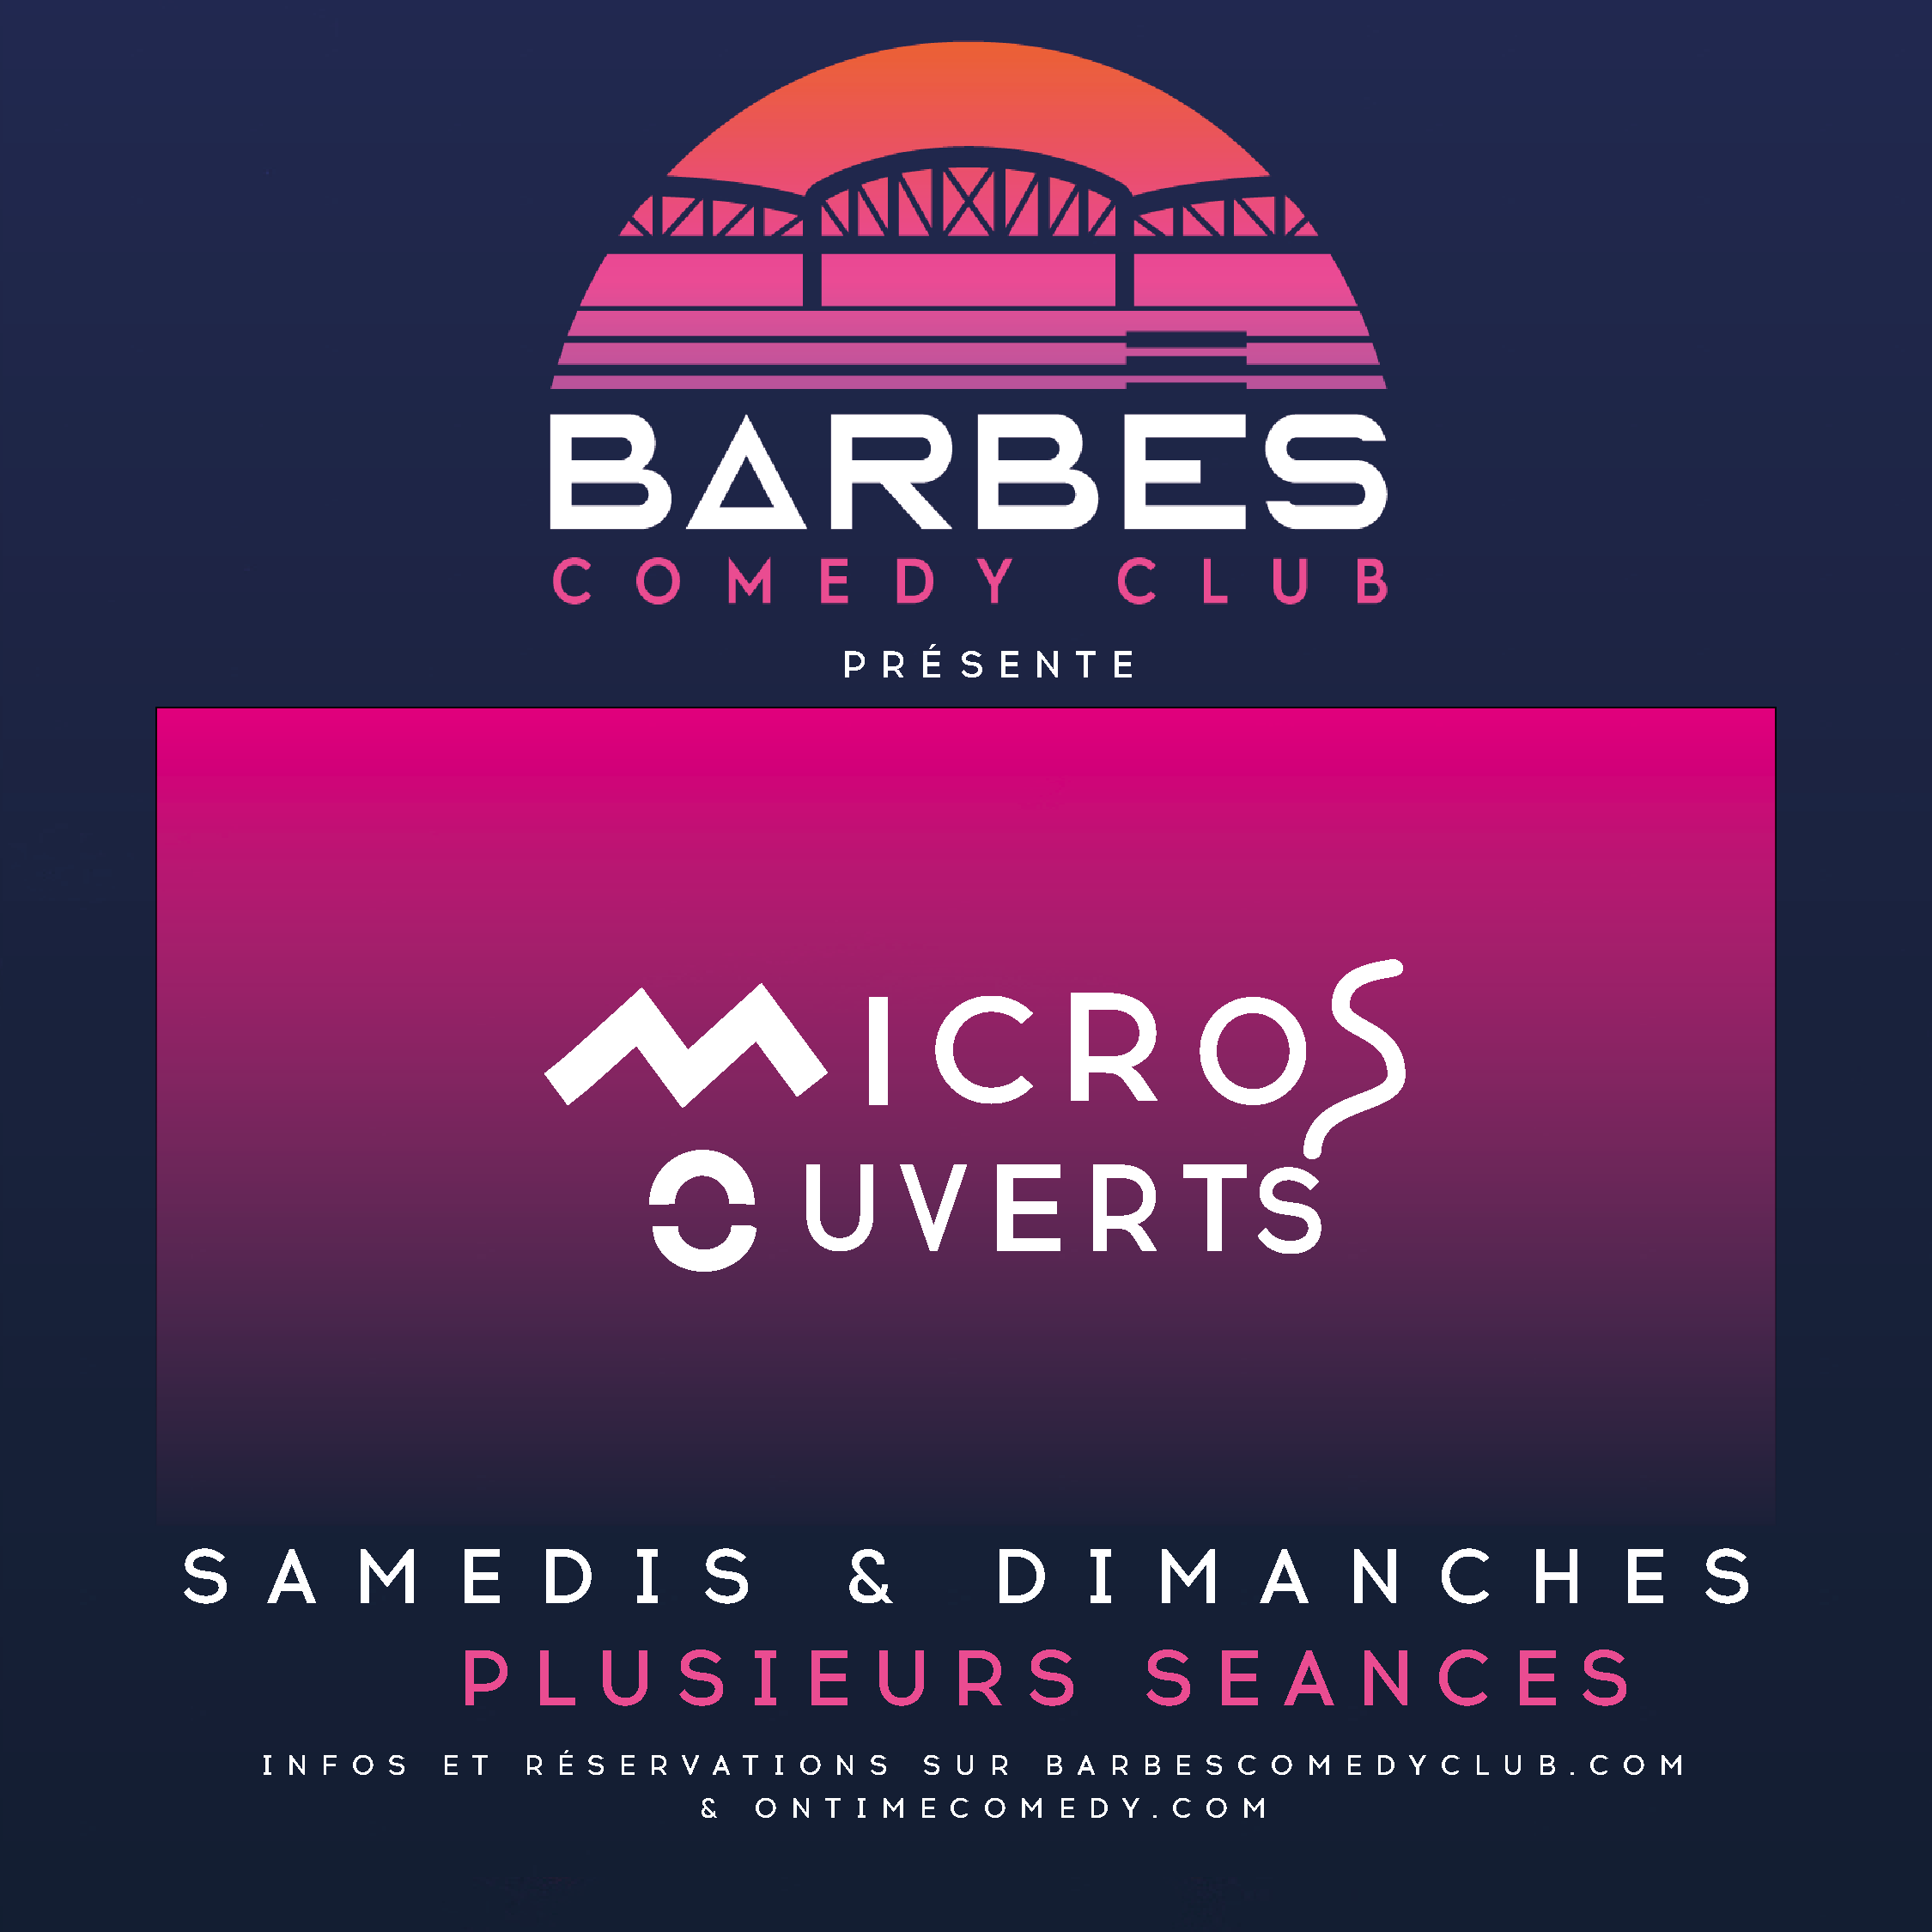 MICROS OUVERTS